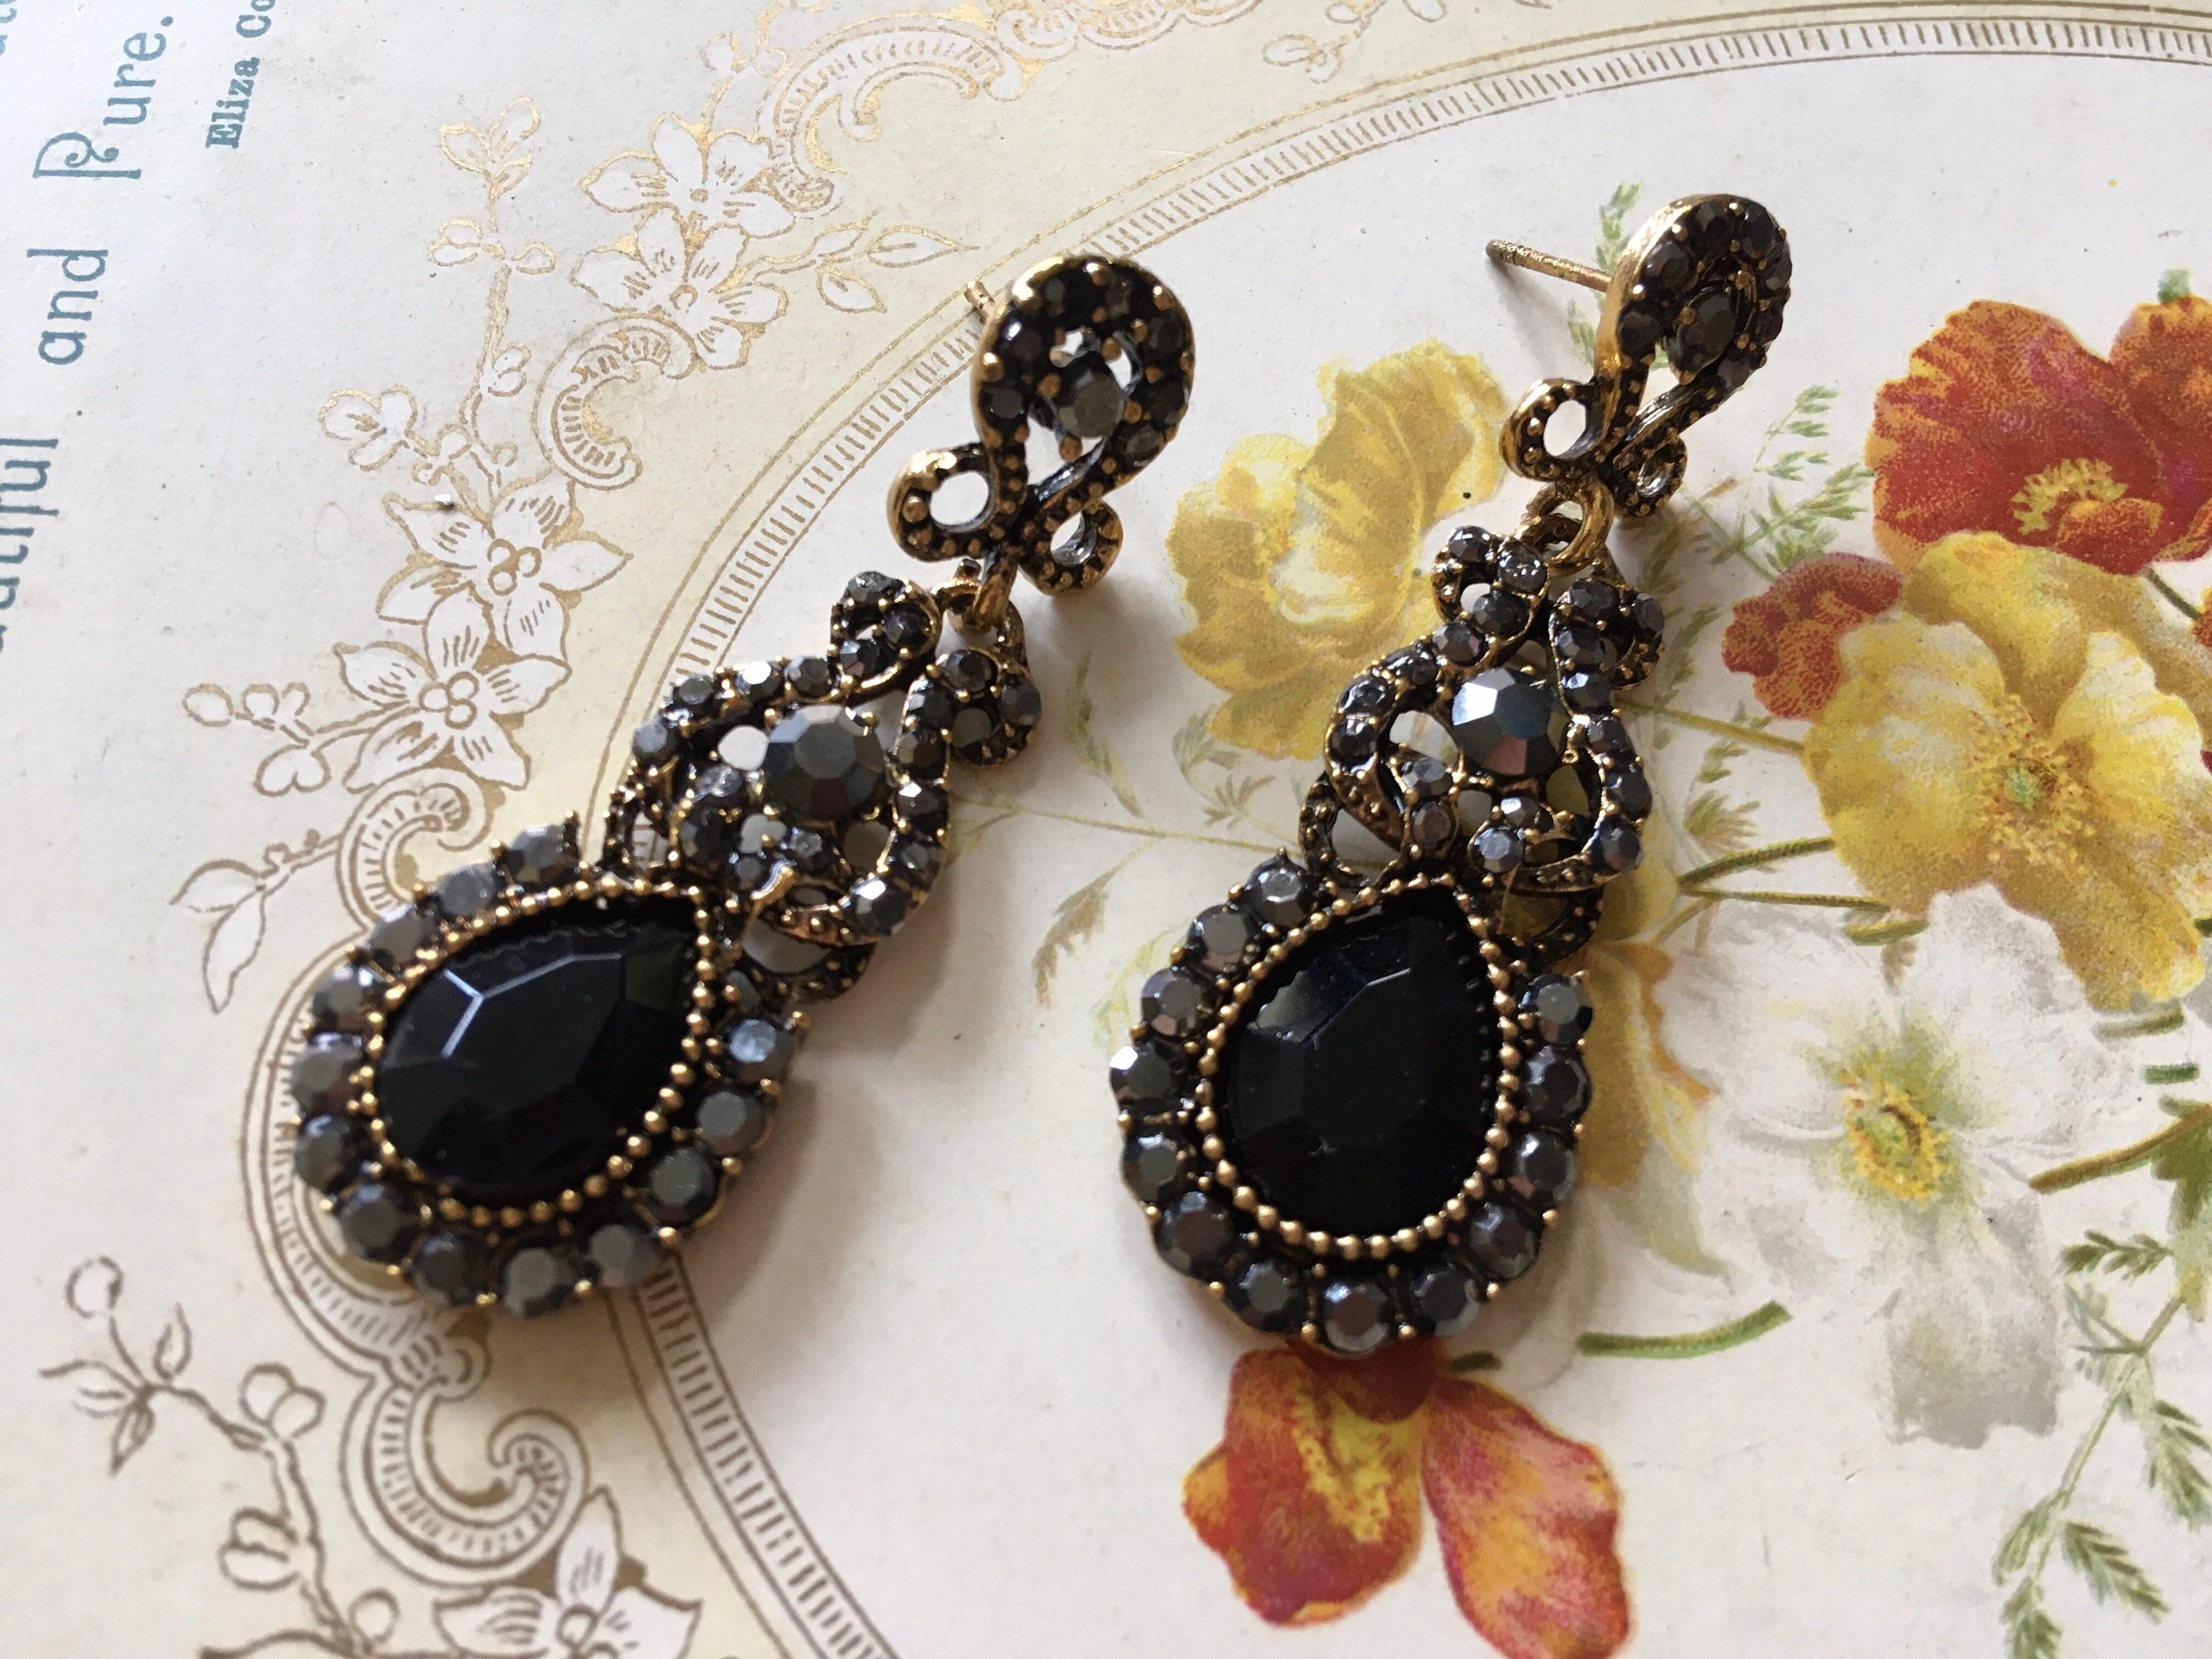 Excited to share this item from my shop: Gothic jewelry, rhinestone earrings, crystal earrings, bridal jewelry, wedding jewelry, black earring, long drop earrings, evening earrings #black #wedding #women #pushback #artnouveau #earlobe #gothic